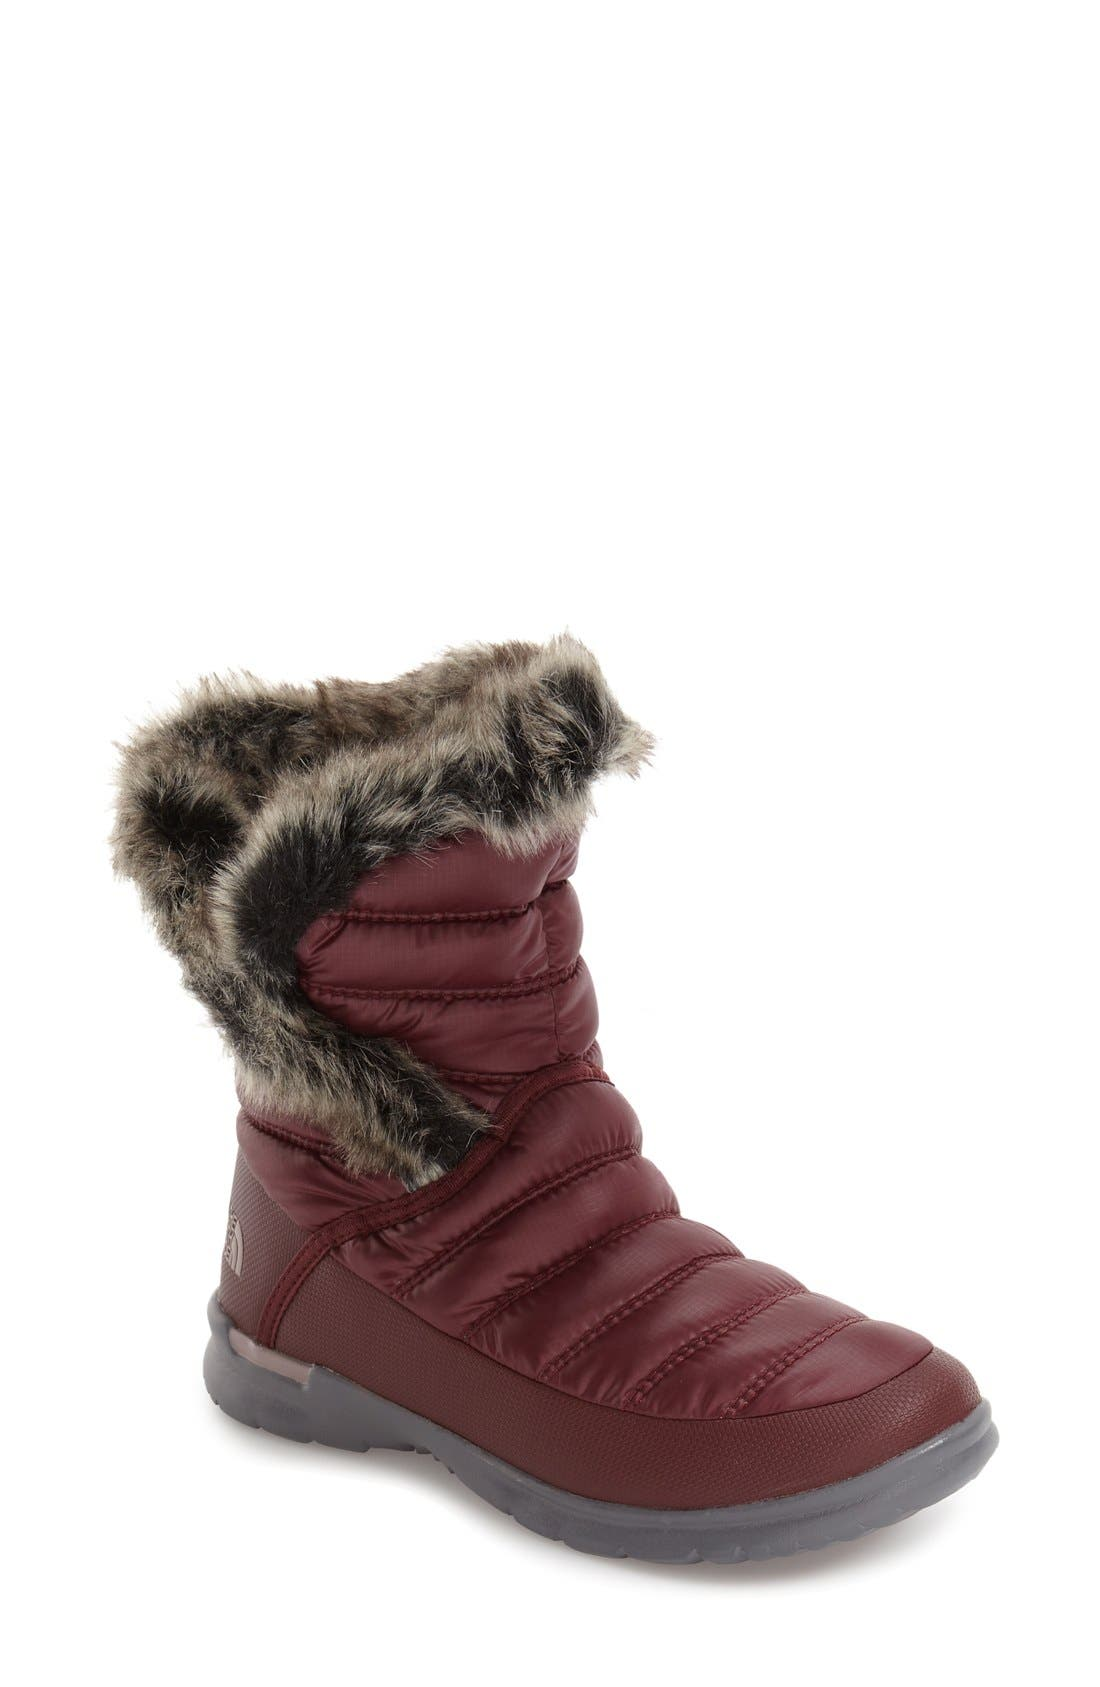 Alternate Image 1 Selected - The North Face Microbaffle Waterproof ThermoBall® Insulated Winter Boot (Women)